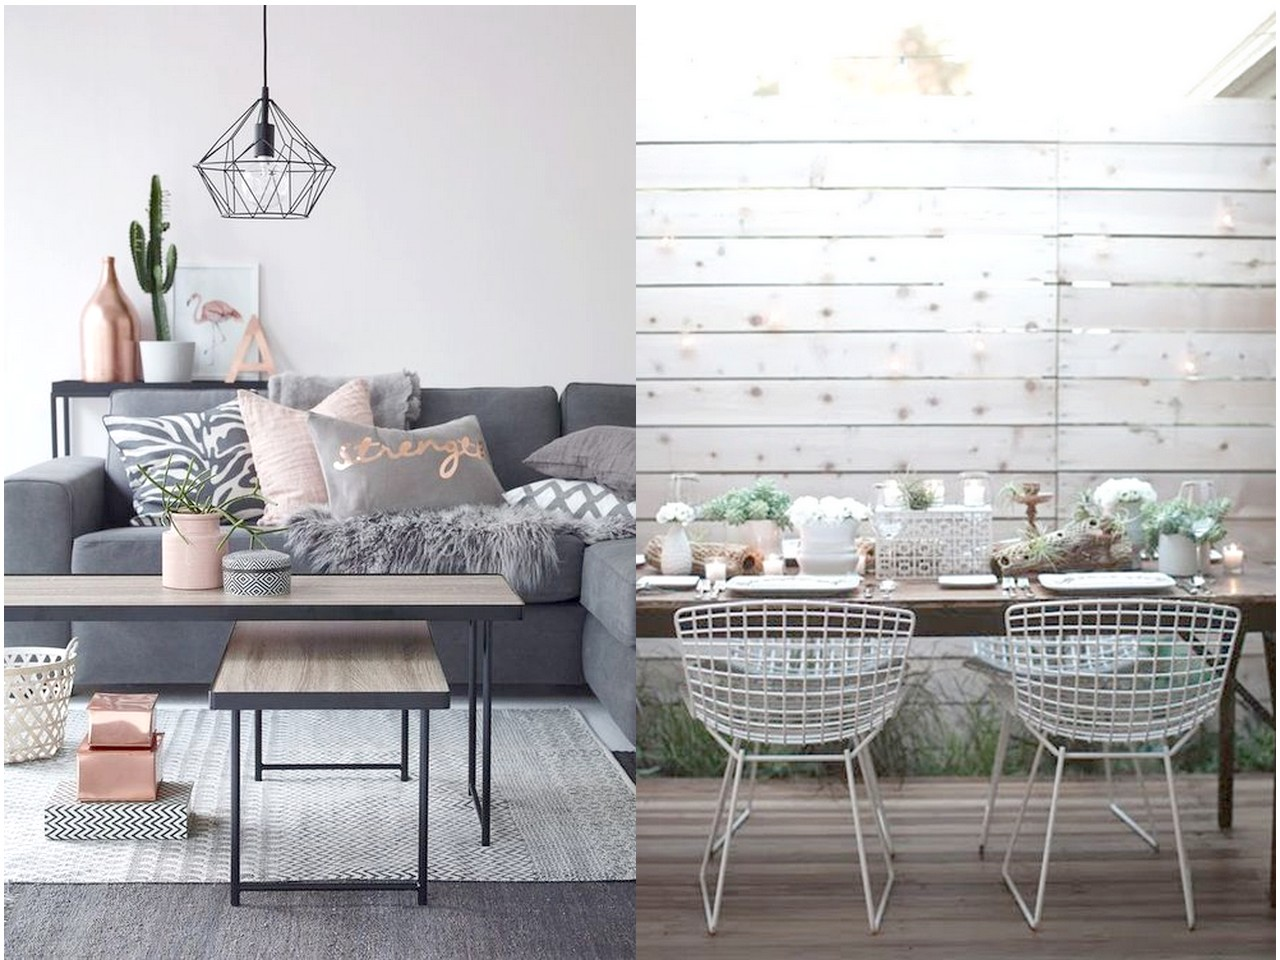 Tendencias 2016 2017 decorar con metal for Tendencia en decoracion 2016